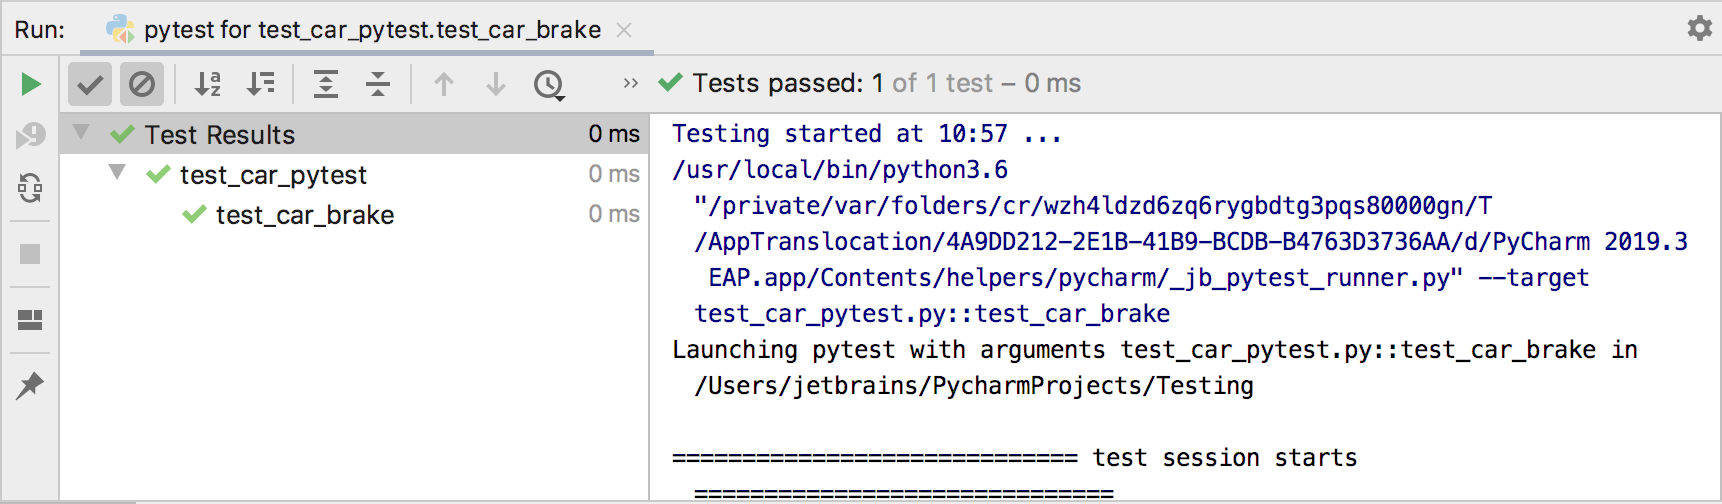 Pytest run